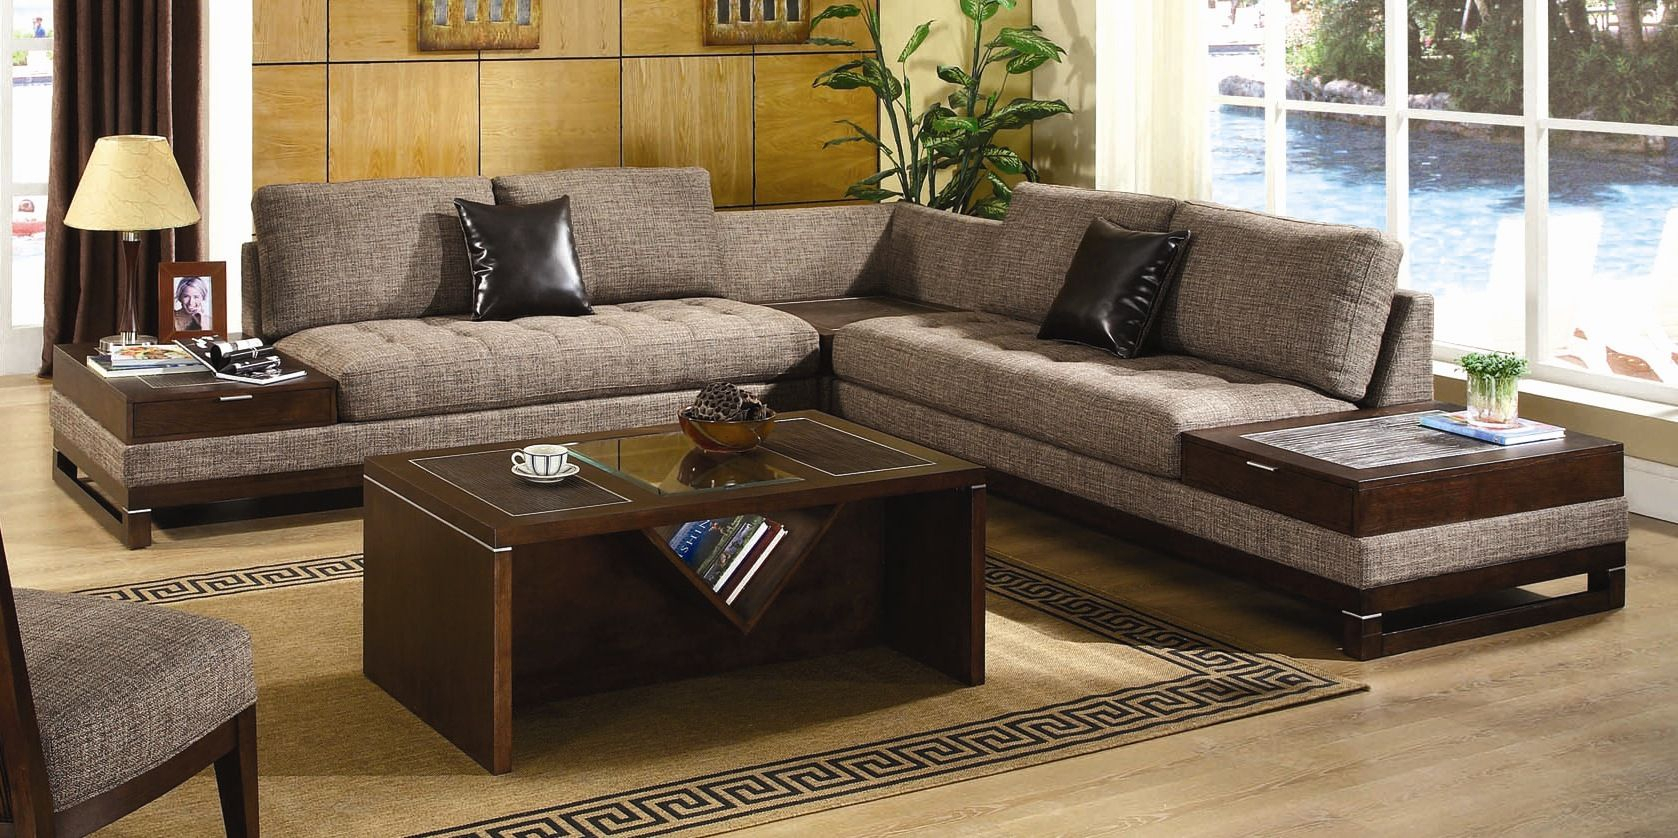 15 Clever Tricks Of How To Make Cheapest Living Room Sets Tavernierspa for 10 Clever Designs of How to Makeover Cheap Living Room Set